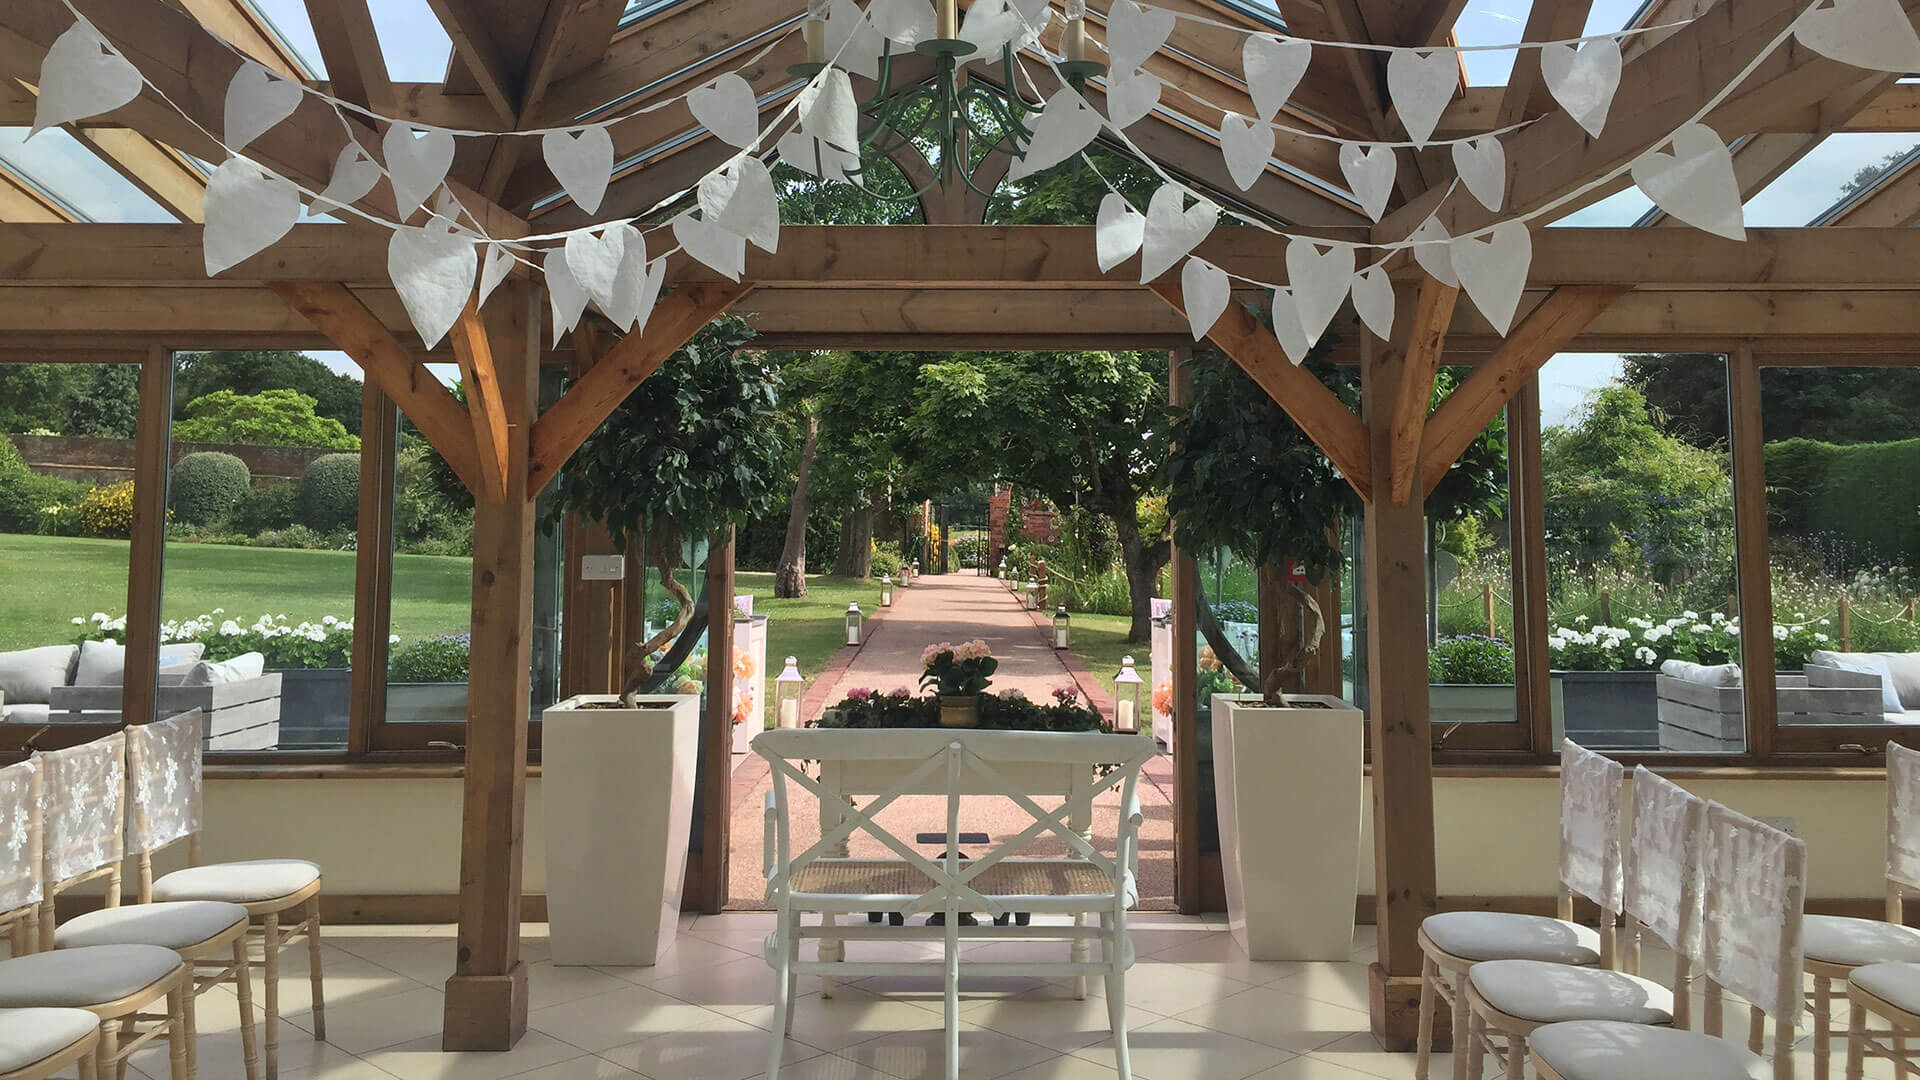 Decorate the Orangery in white heart paper bunting - summer wedding ideas